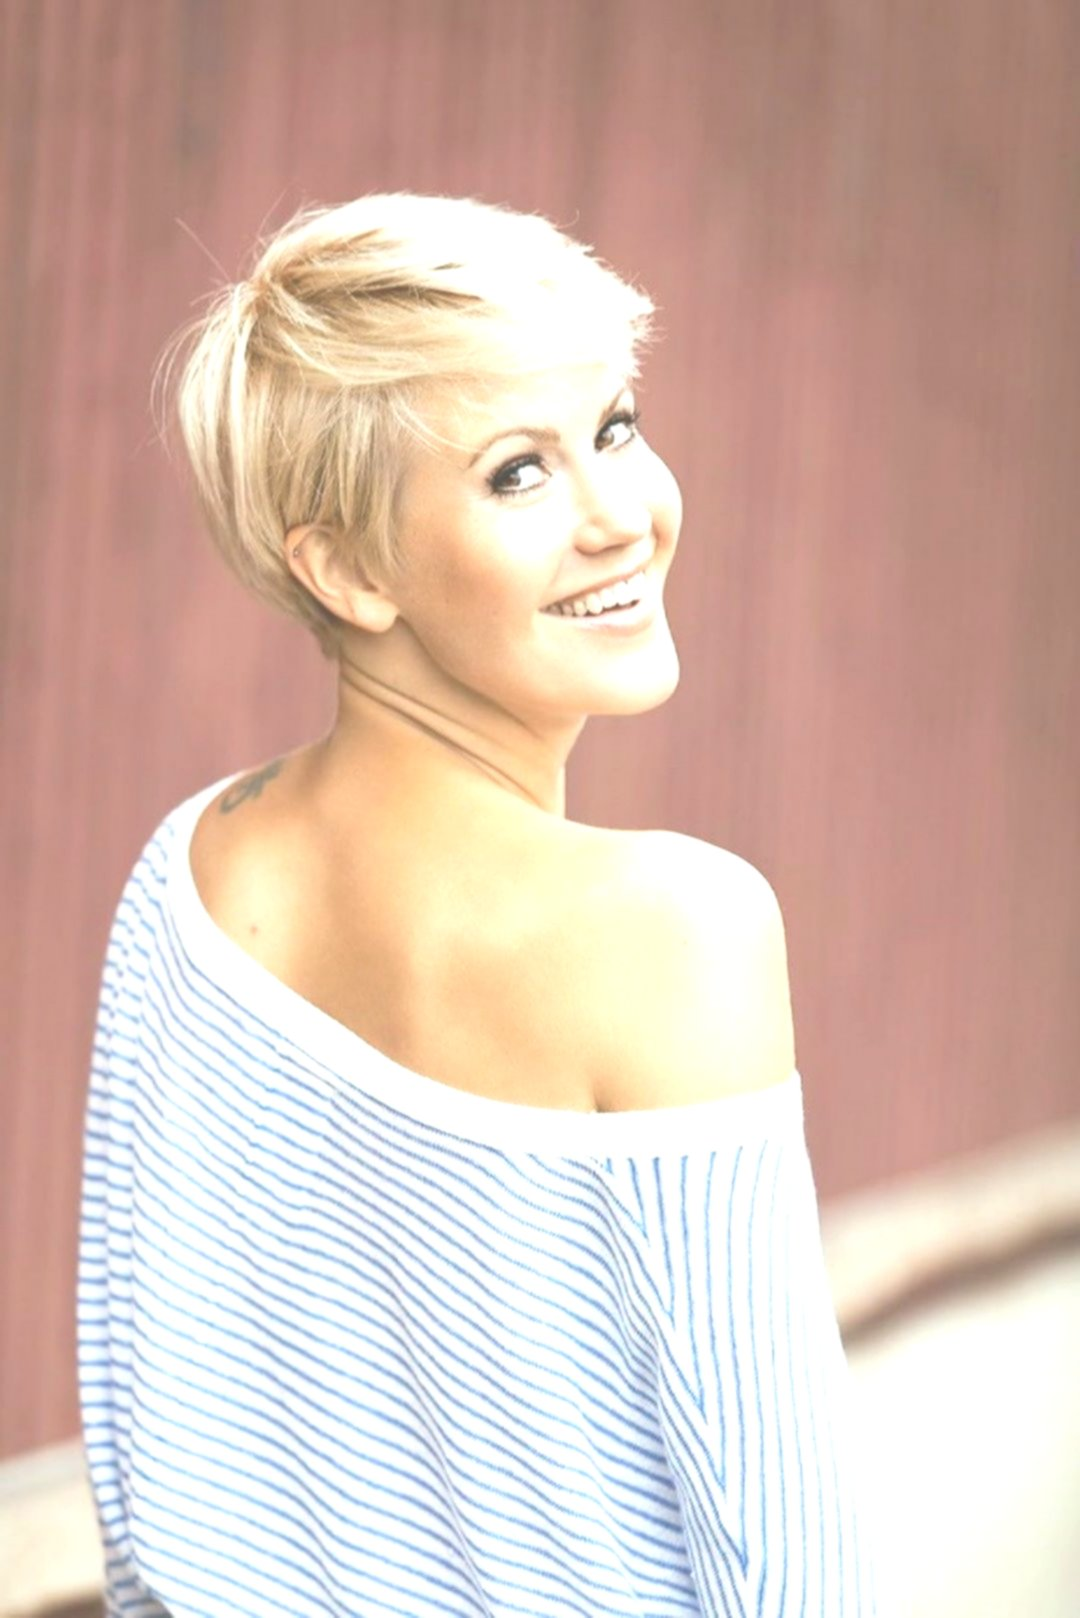 finest hairstyles blond short collection sensational hairstyles blond short collection